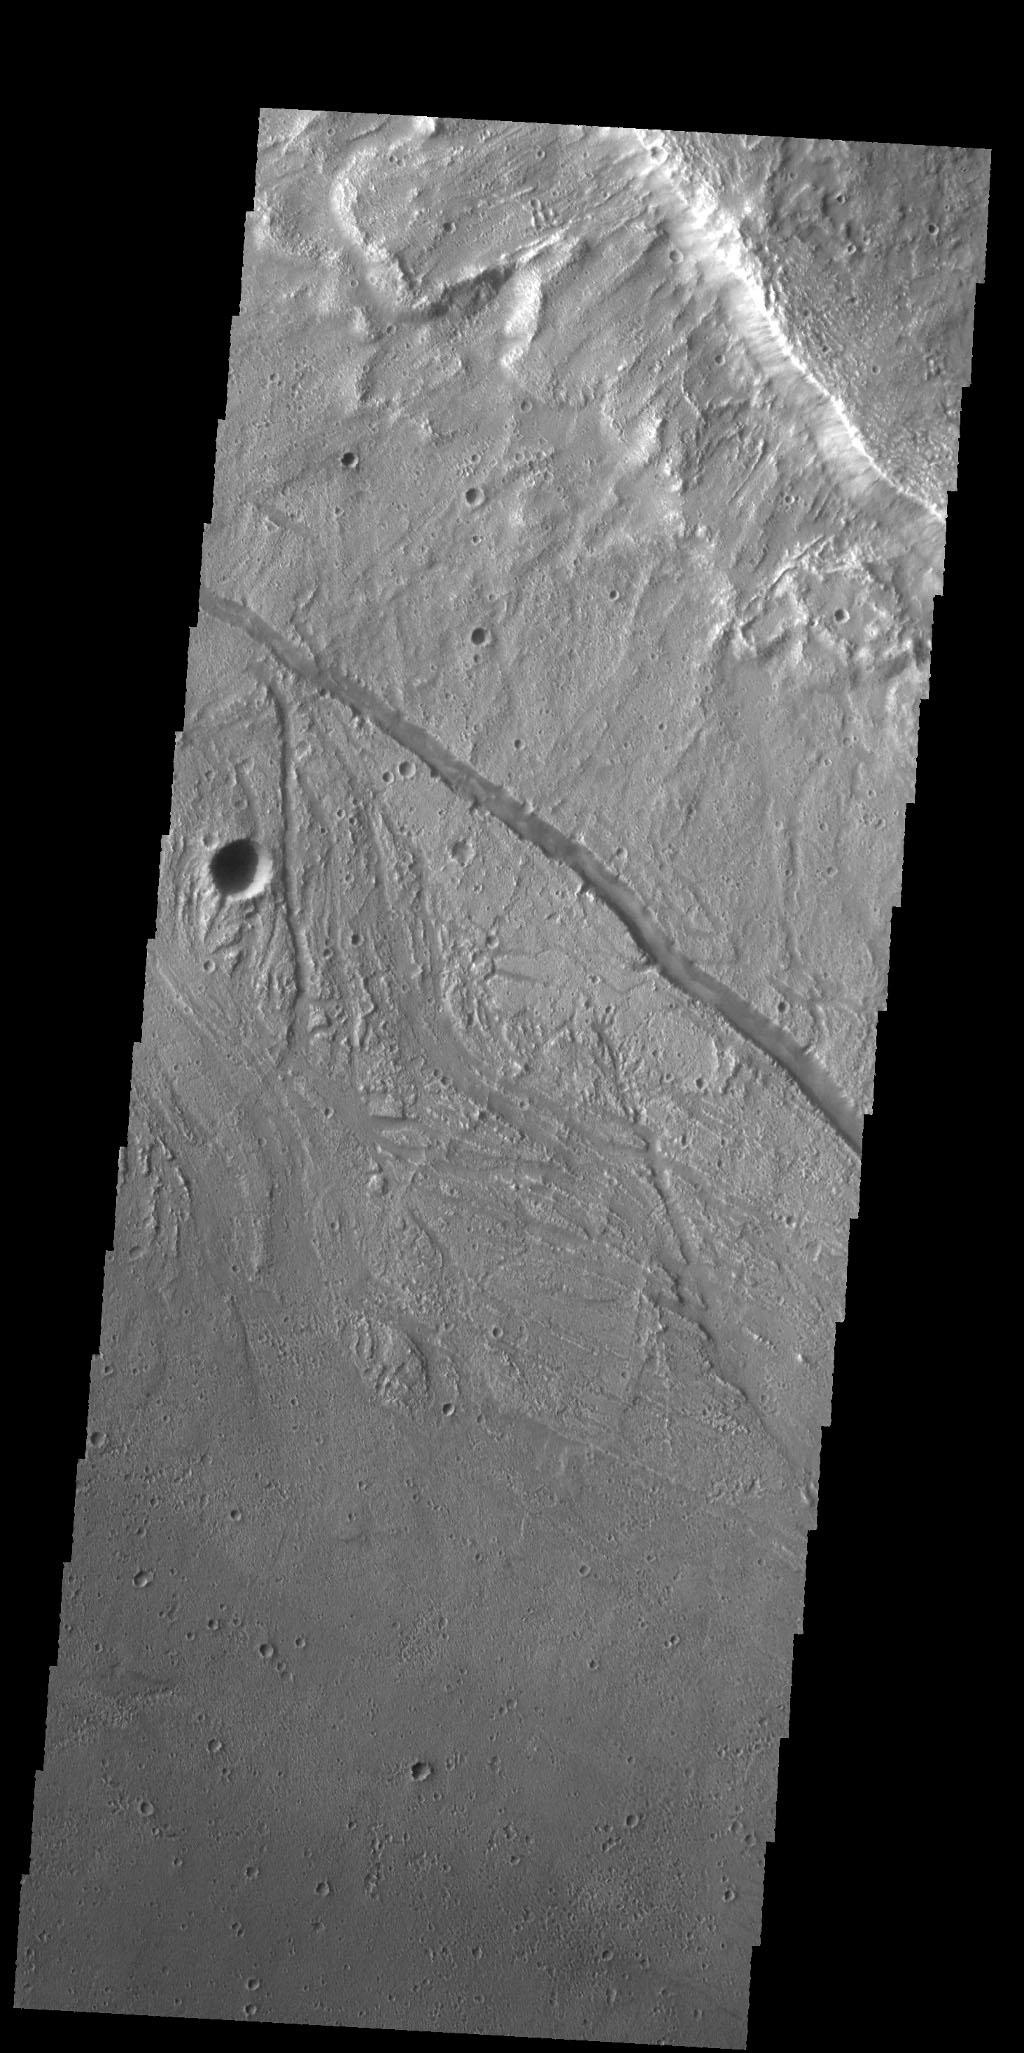 The small channels in this image from NASA's 2001 Mars Odyssey spacecraft are located within the much larger Kasei Valles channel.